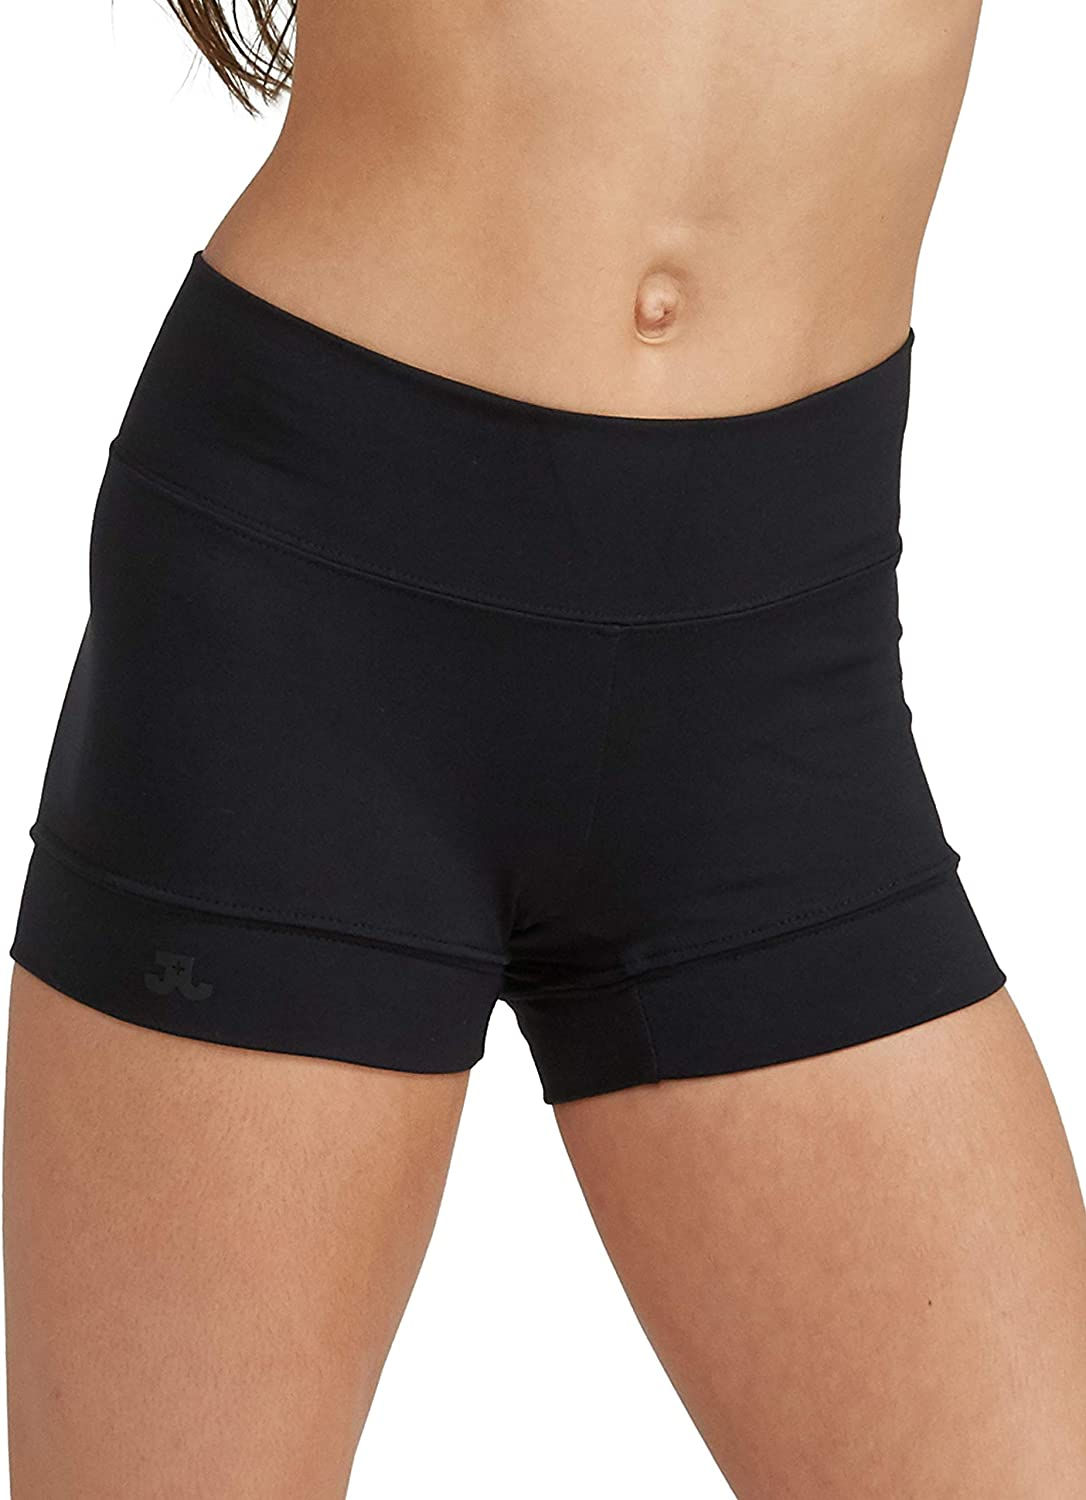 JO + JAX Bandit Booty Short   Dance and Activewear Short with Wide Waist Band for Girls